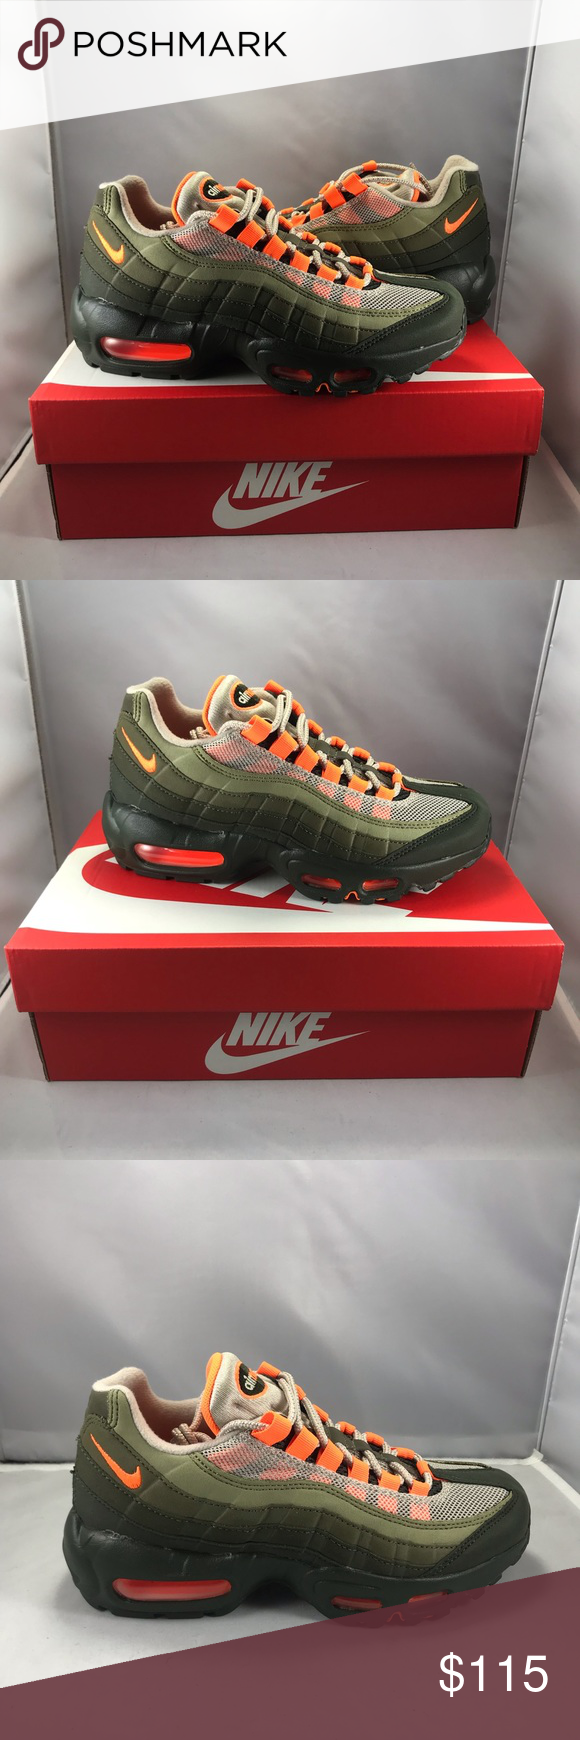 best loved e09c6 ea971 Nike Shoes | Nike Air Max 95 Og Neon Orange And Neutral ...